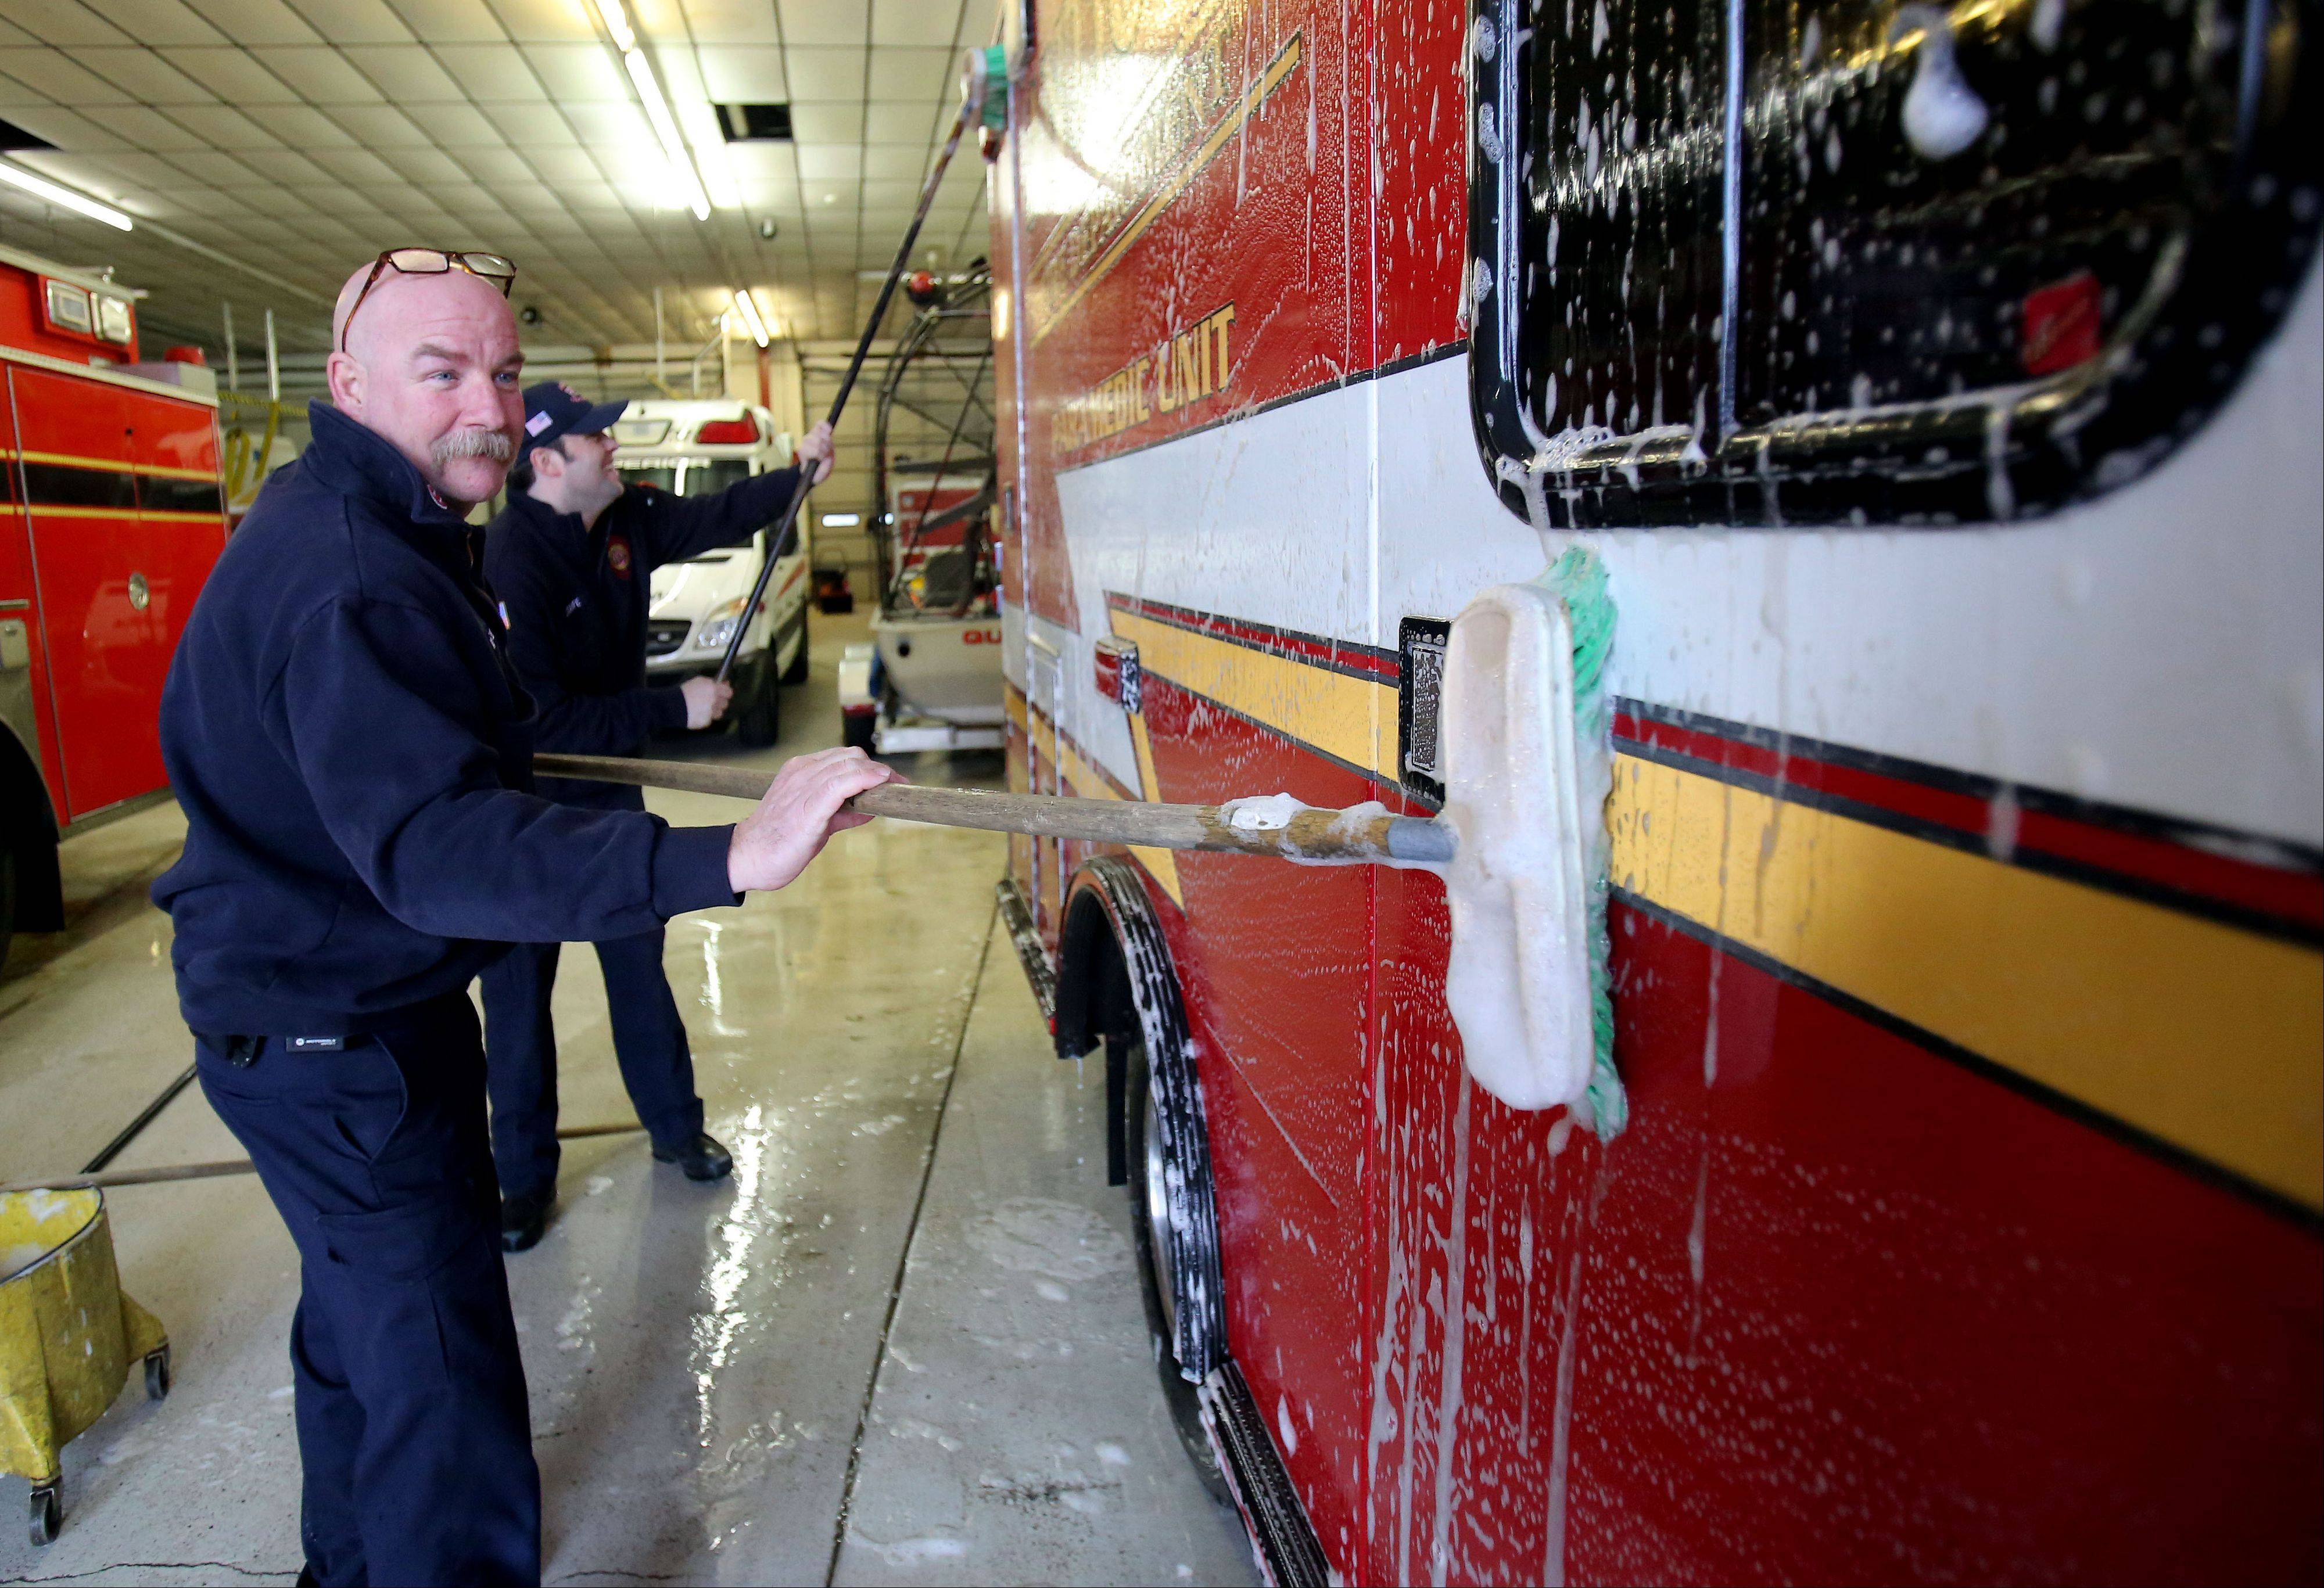 Antioch Fire Capt. Dave Nellessen, left, and firefighter Justin Scaife wash an ambulance at the Antioch Fire Station. Most area fire stations, equipment and fire trucks are co-owned by the First Fire Protection District and the Antioch Volunteer Fire Department.